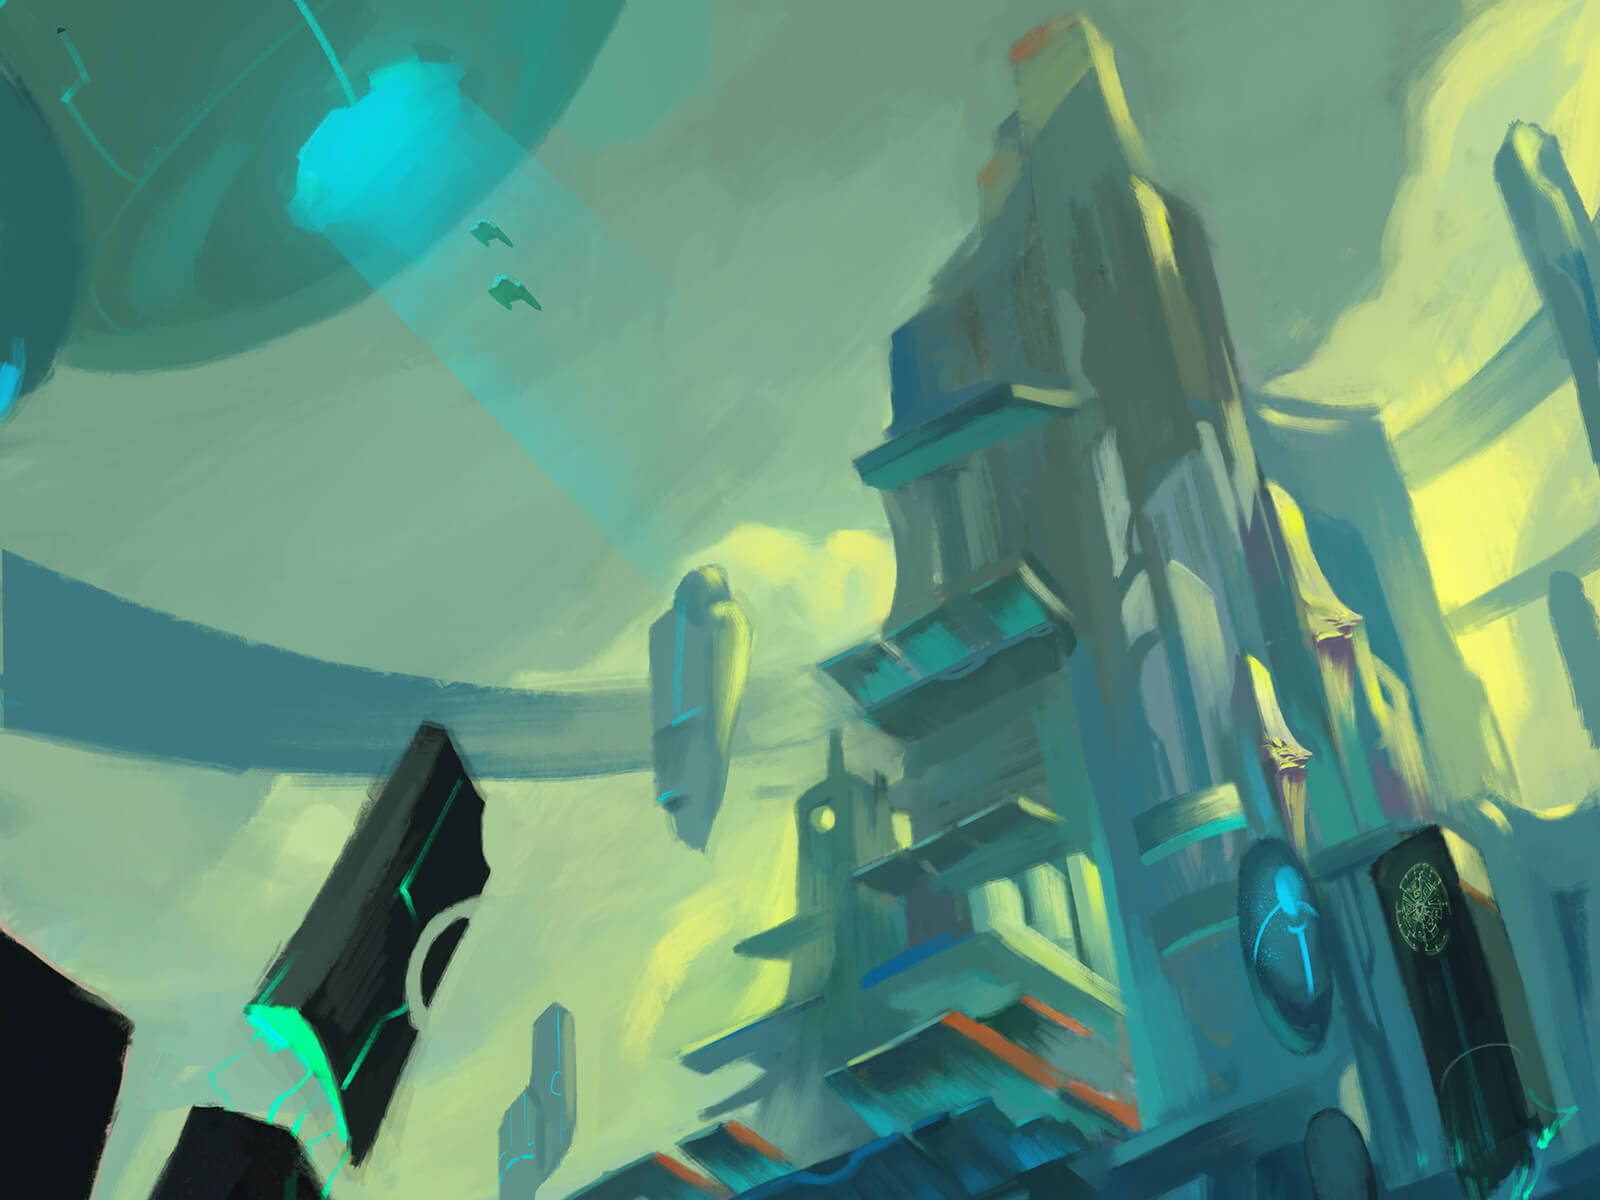 digital painting of a futuristic cityscape where airships fly among the buildings